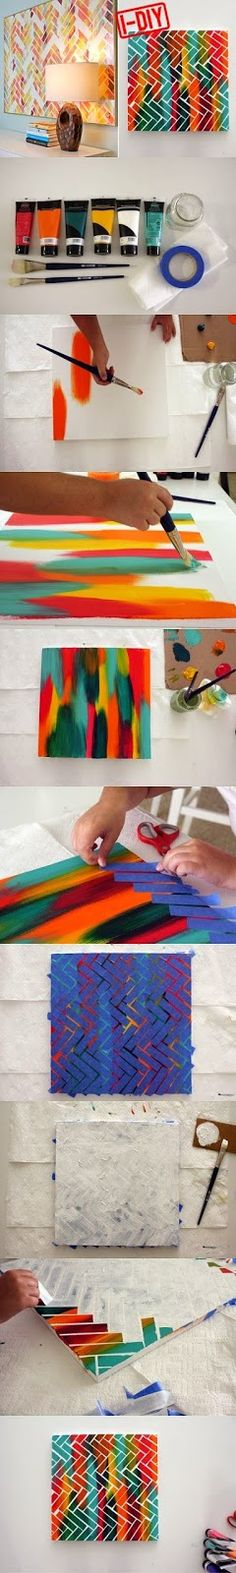 DIY Project Painters Tape Art, pretty awesome and neat that someone shared the idea. Just one thing. This is art, not just a DIY project. Cute Crafts, Crafts To Do, Diy Crafts, Arts And Crafts, Diy Projects To Try, Art Projects, Spray Paint Projects, Painters Tape Art, Cuadros Diy